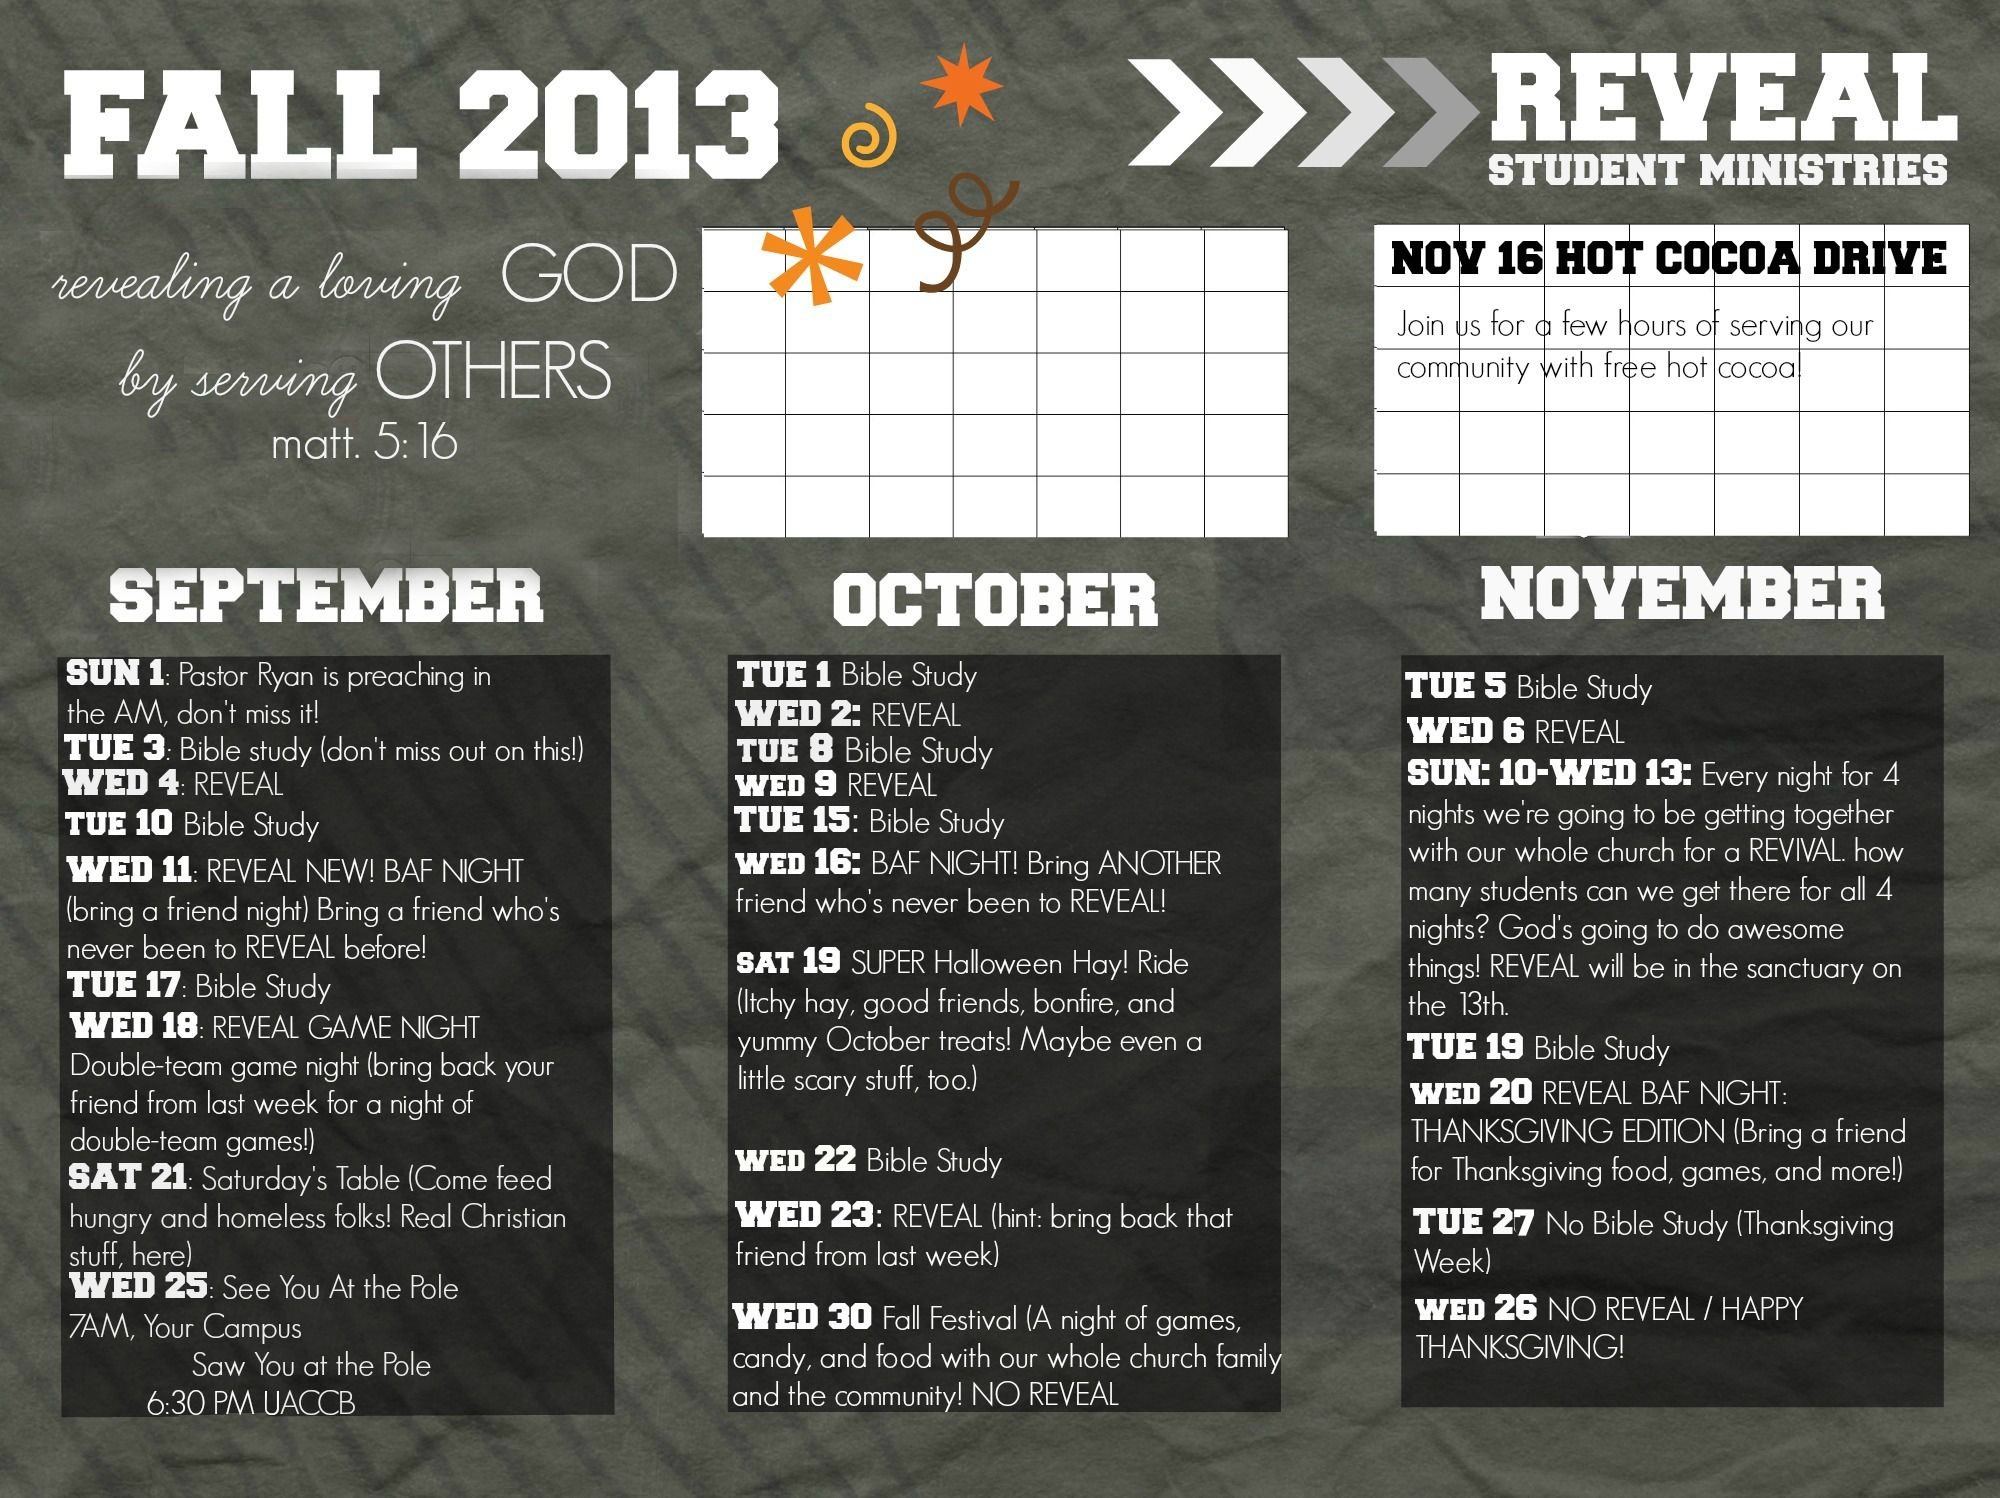 Youth Ministry Calendar Ideas : Reveal youth group fall calendar possibly send out to the